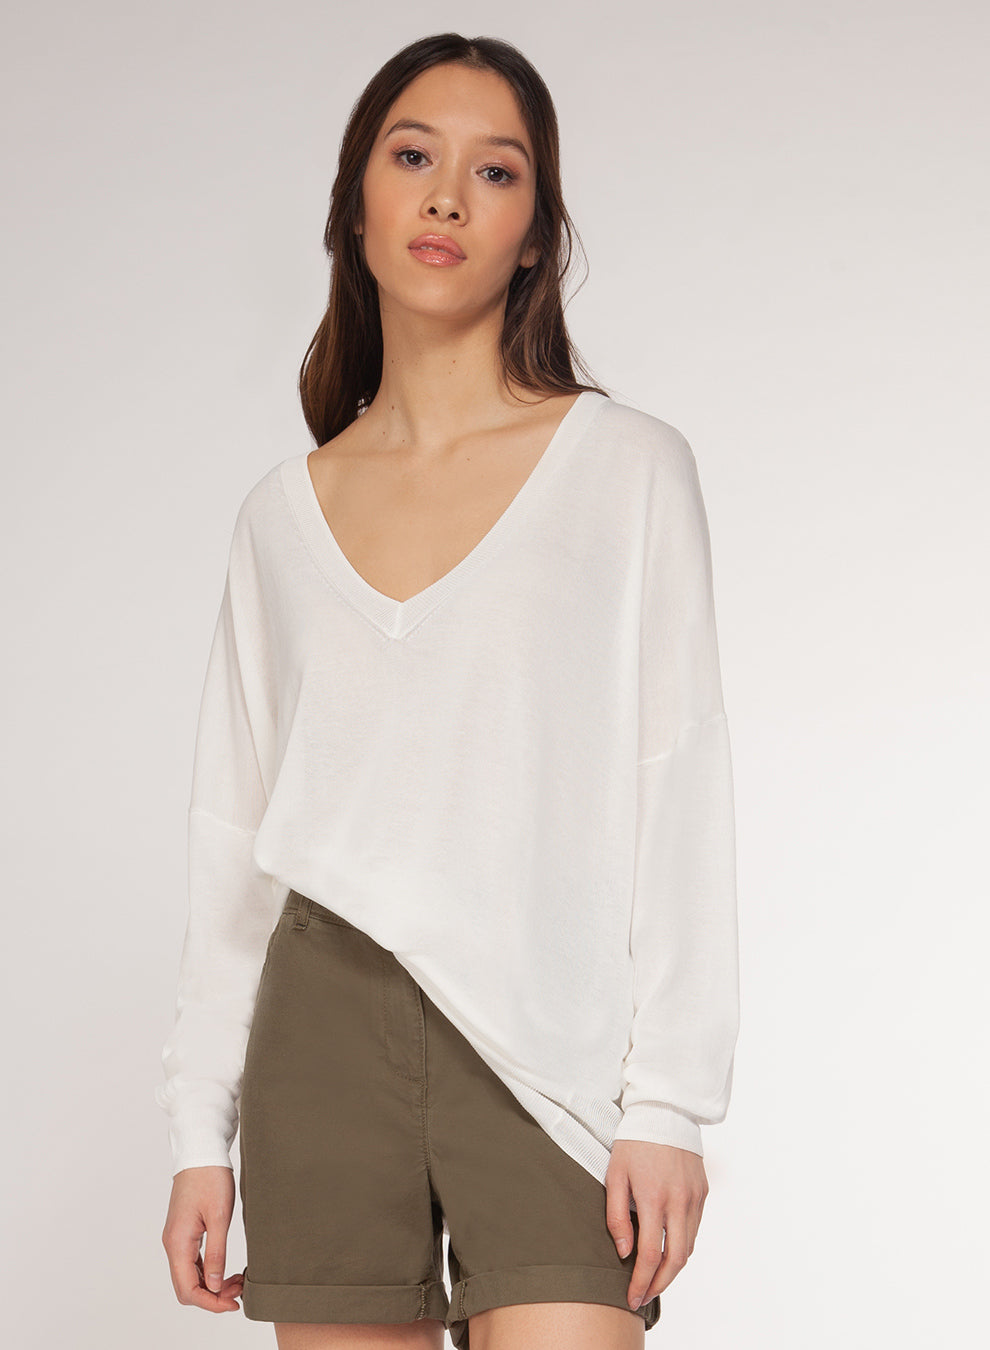 DEX CLOTHING LADIES CREAM SWEATER